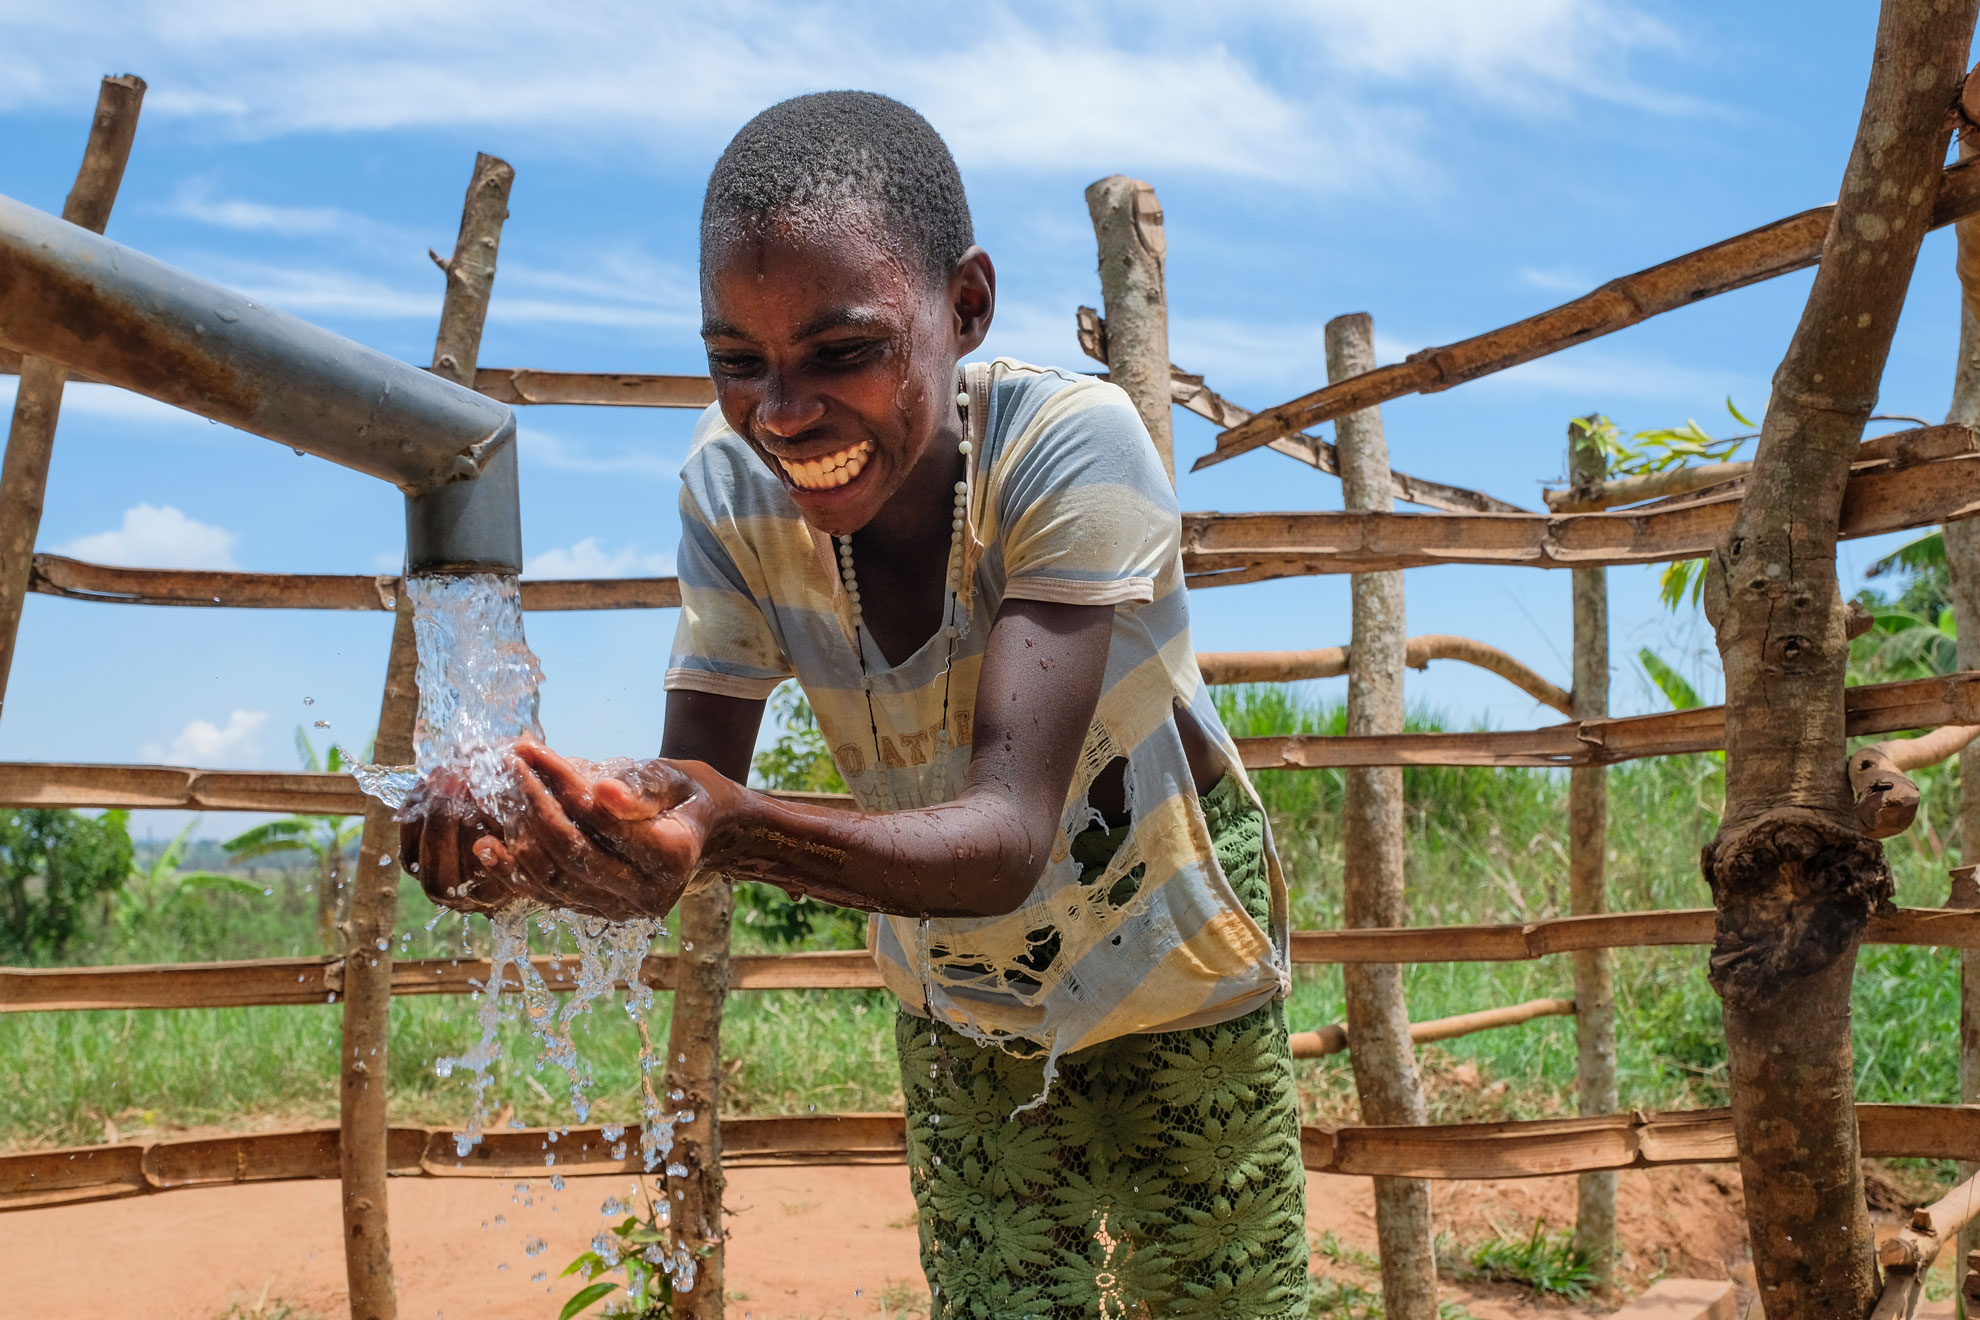 Boy refreshes himself at a well. ©arche noVa